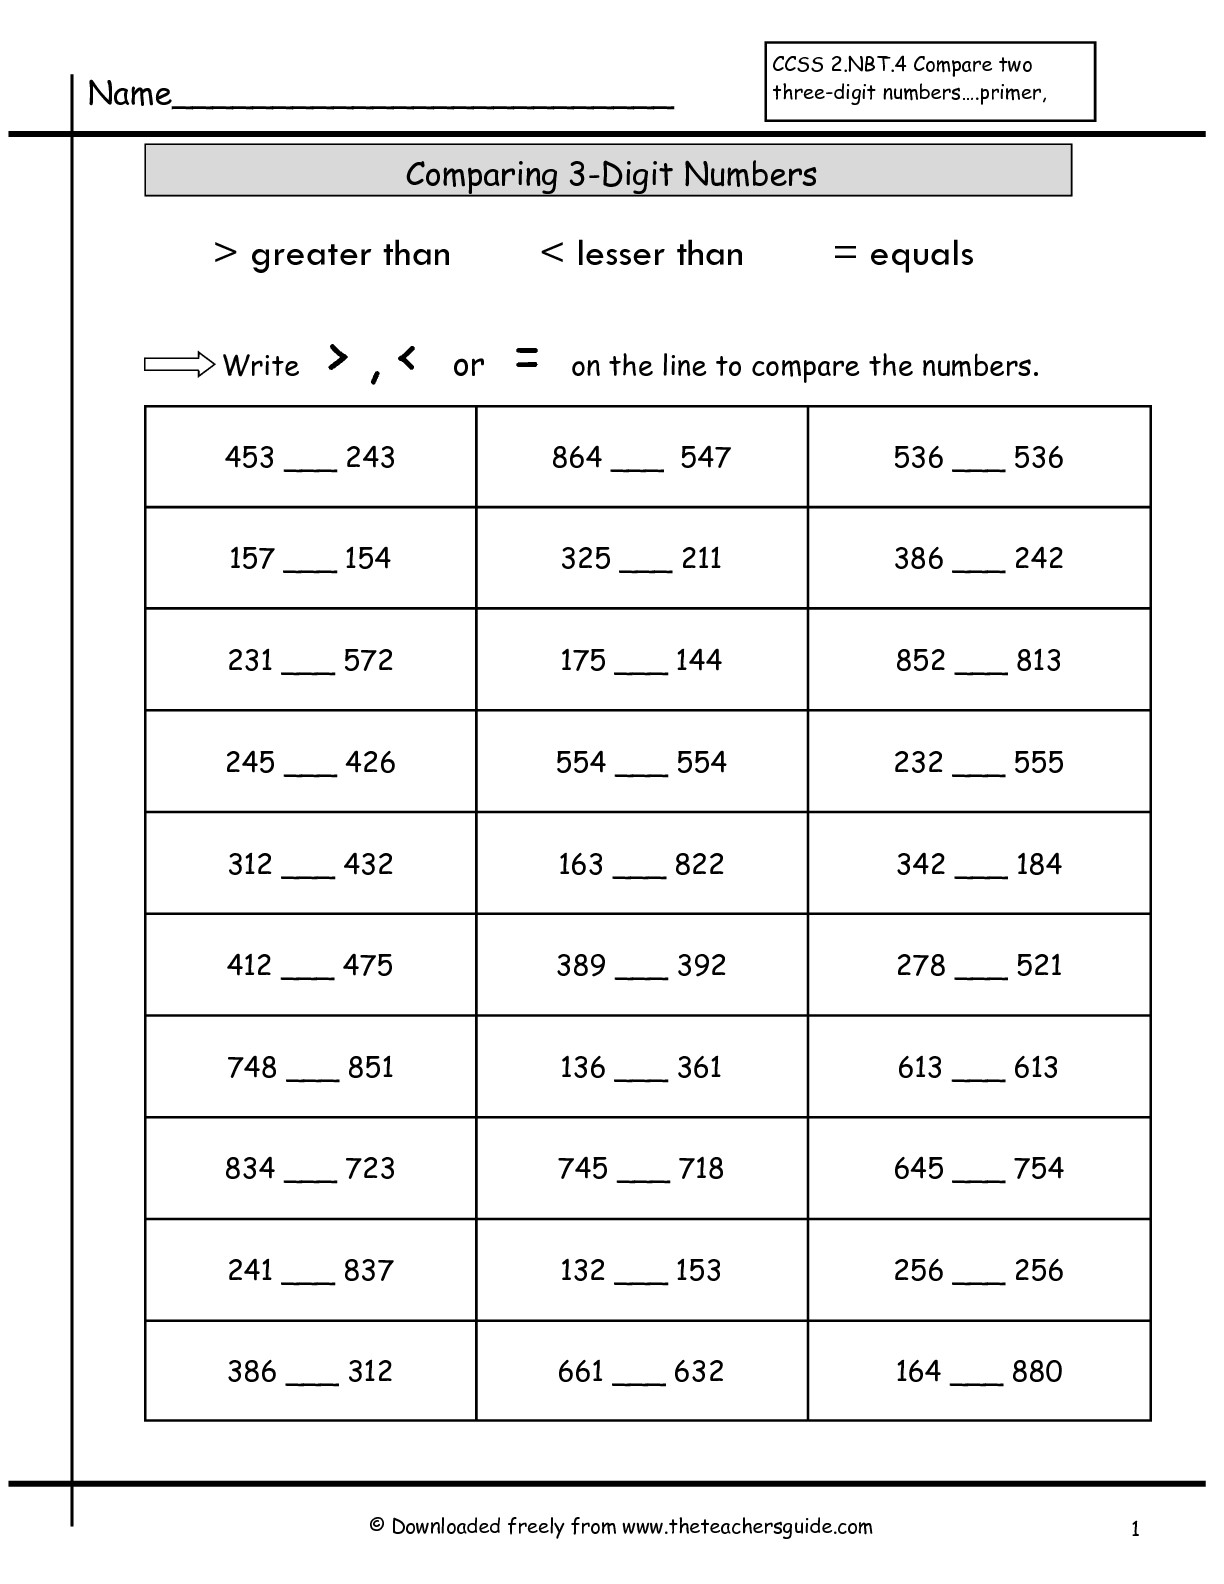 12 Best Images Of Two Digit Place Value Worksheets